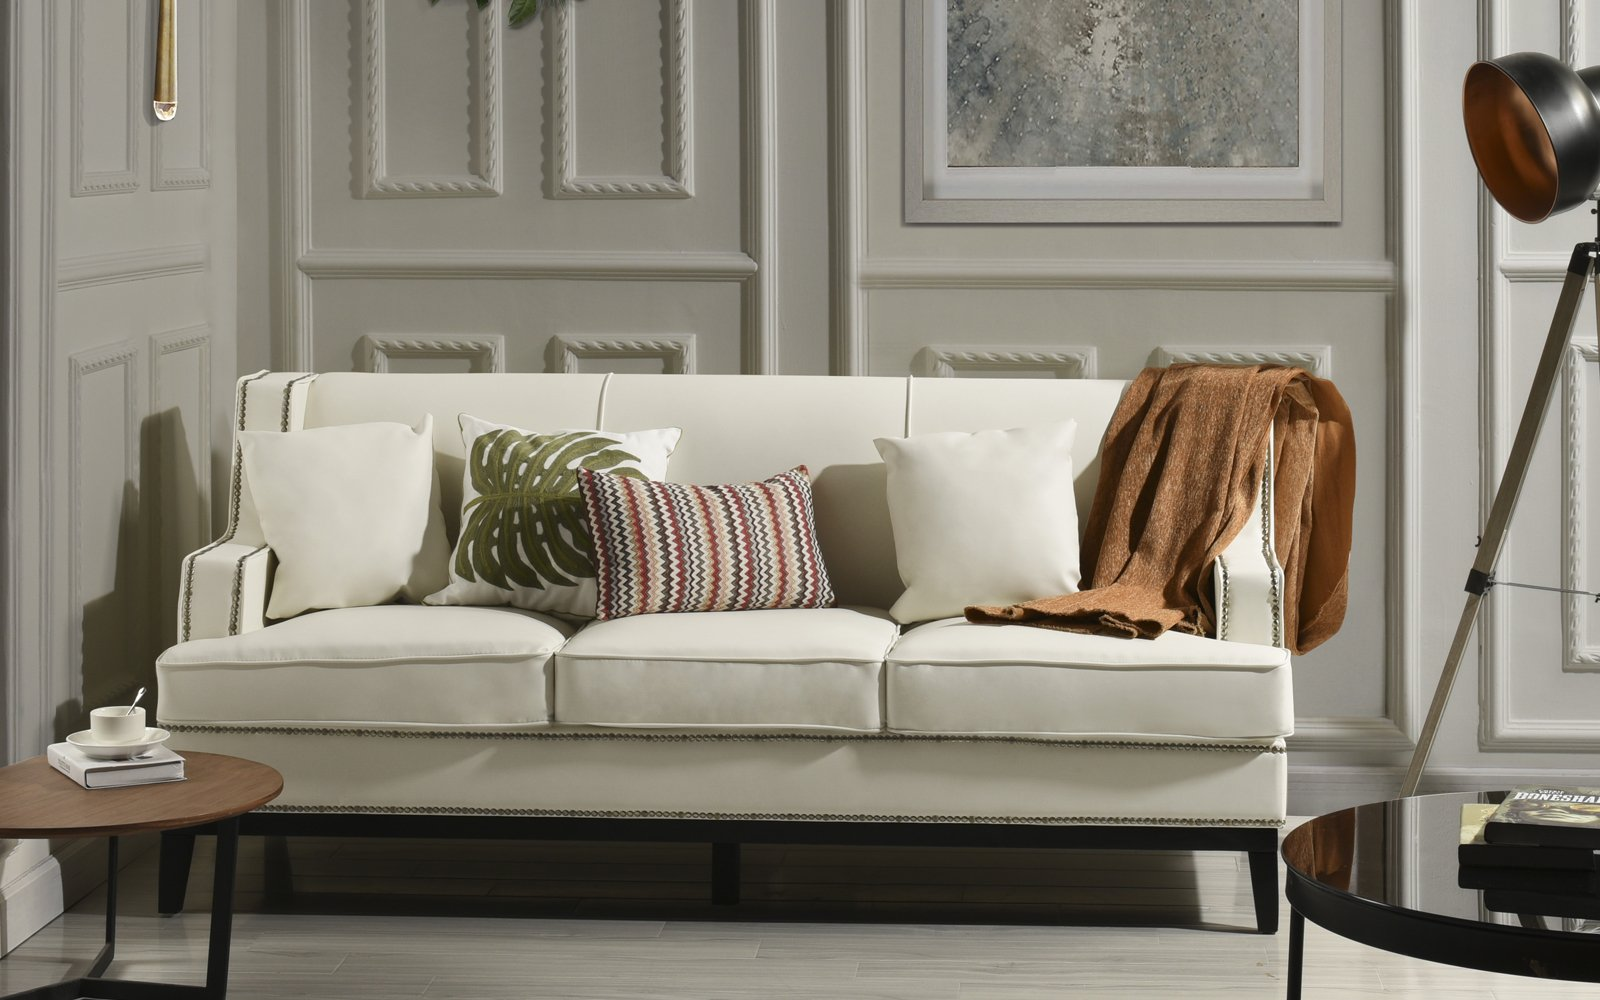 Details About Modern Soft Bonded Leather With Nailhead Trim Living Room Sofa In White